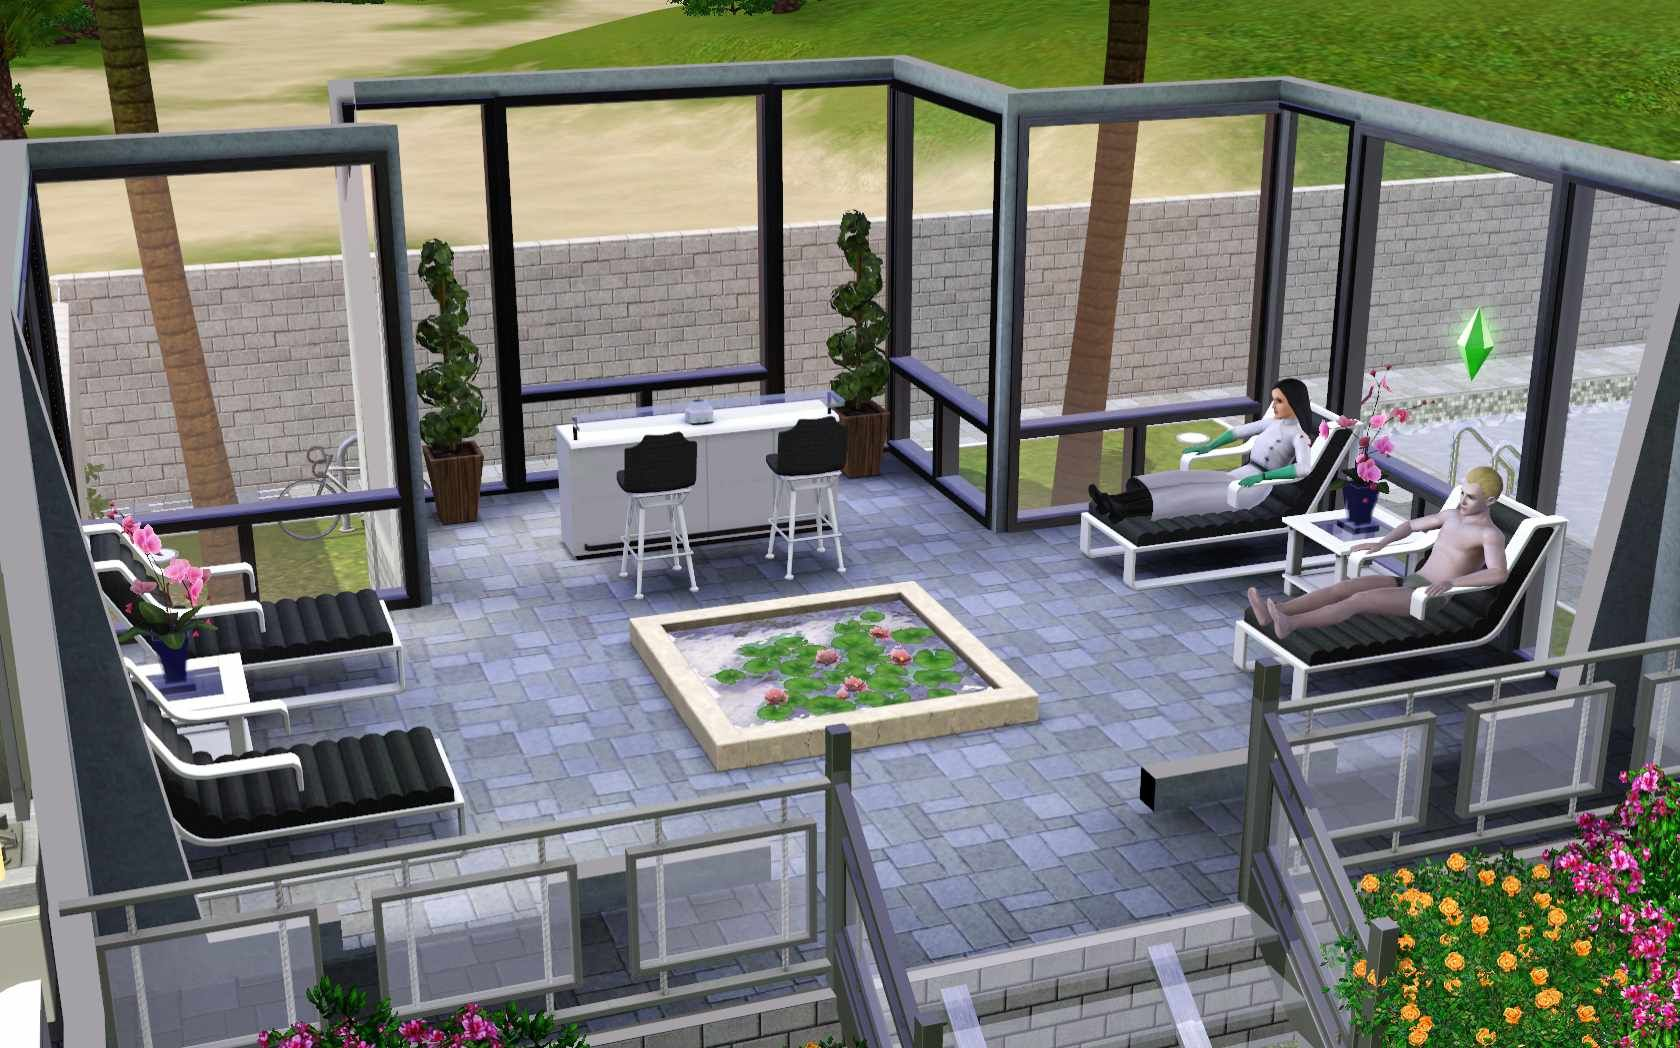 Living Room Ideas Sims 3 the sims 3 home building and design | video game designs